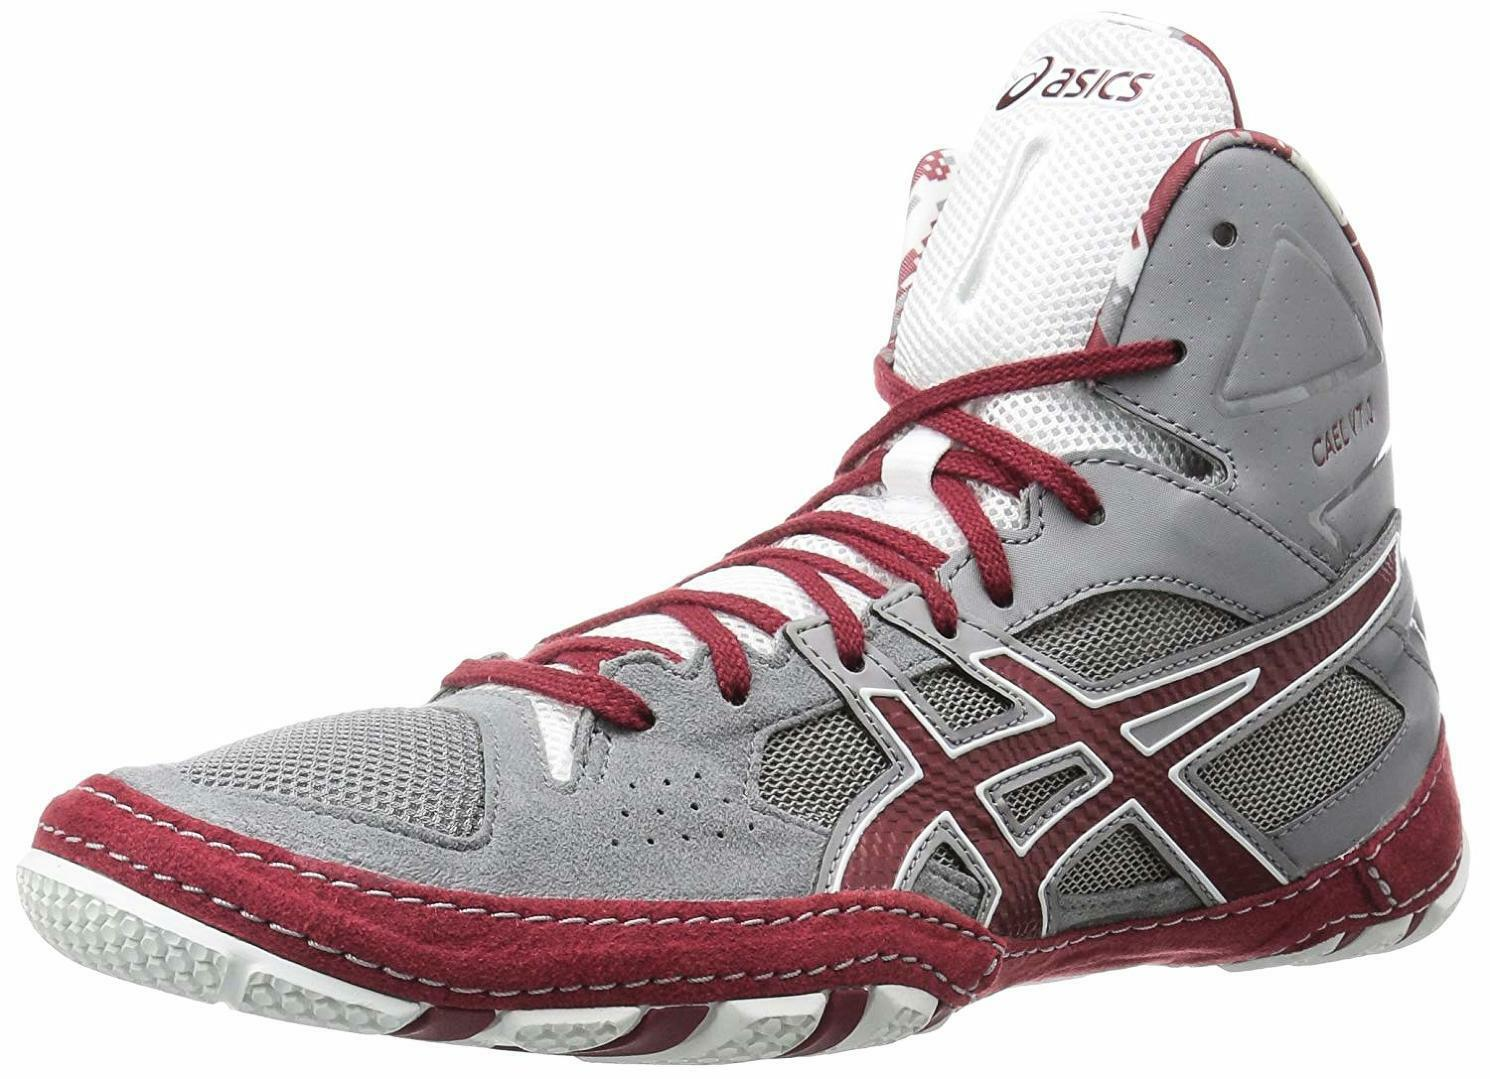 ASICS Men's Cael V7.0 Wrestling shoes - Choose SZ color